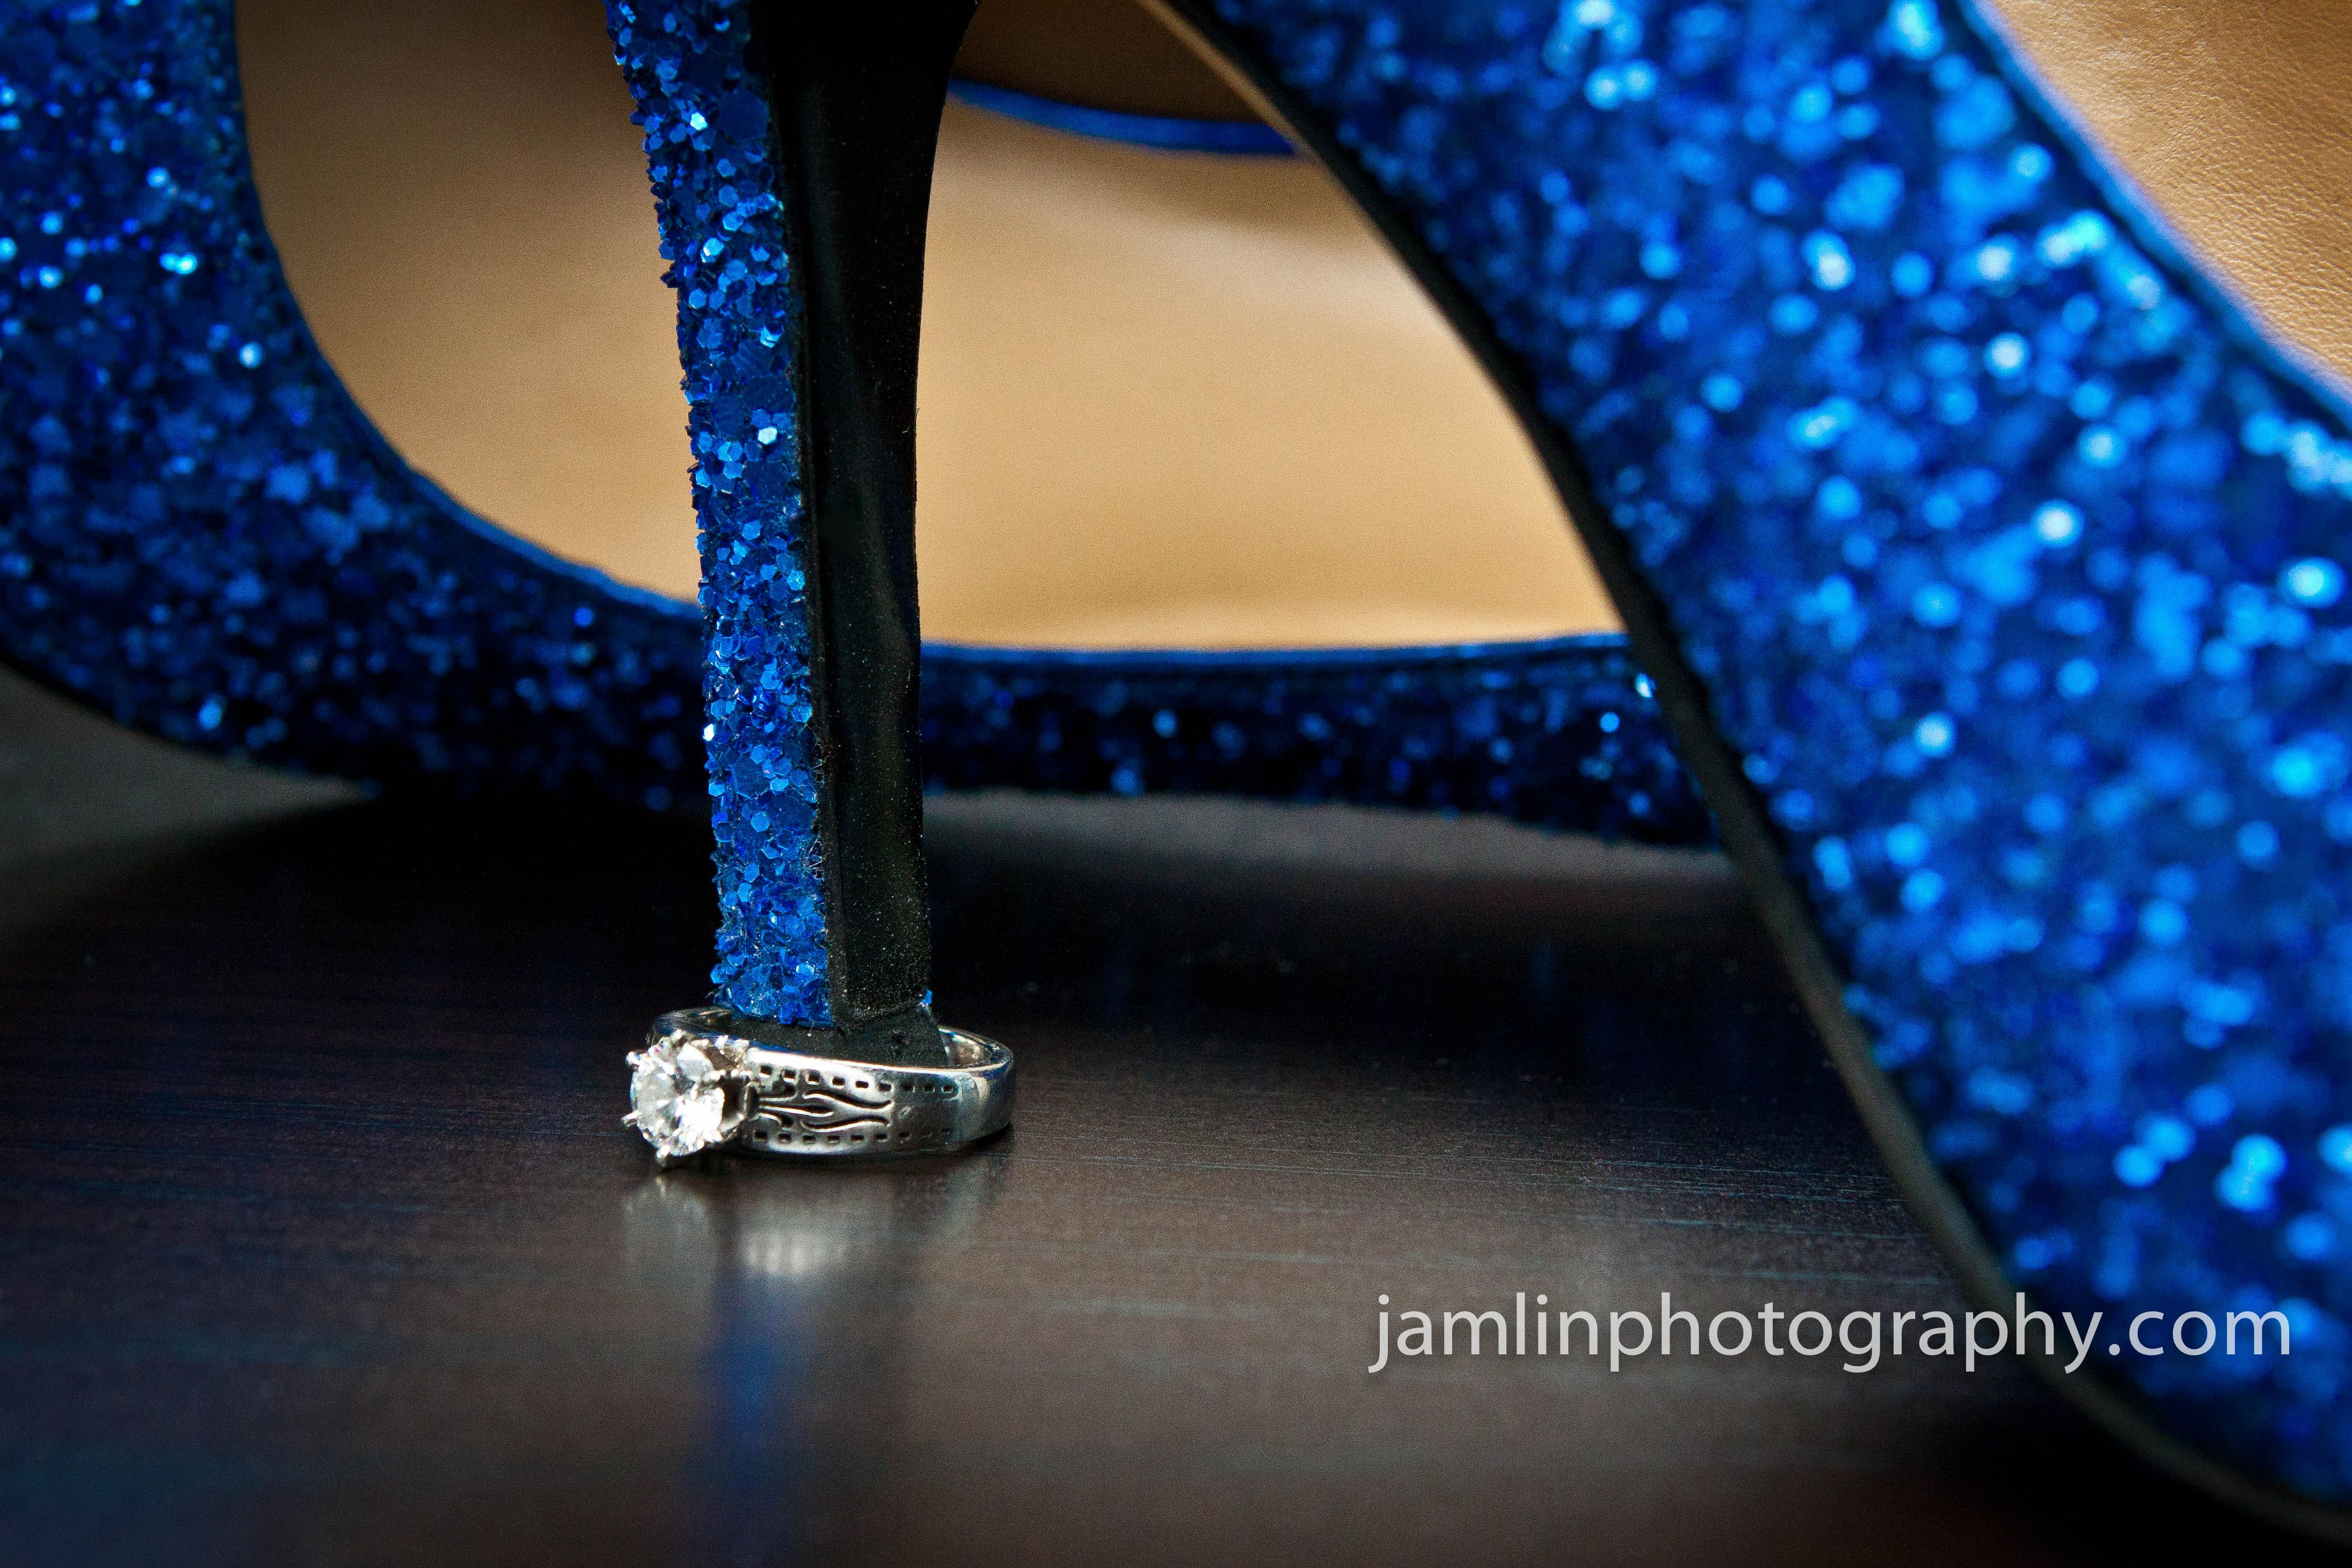 Windsor Wedding Photography | J. Amlin Photography | www.jamlinphotography.com